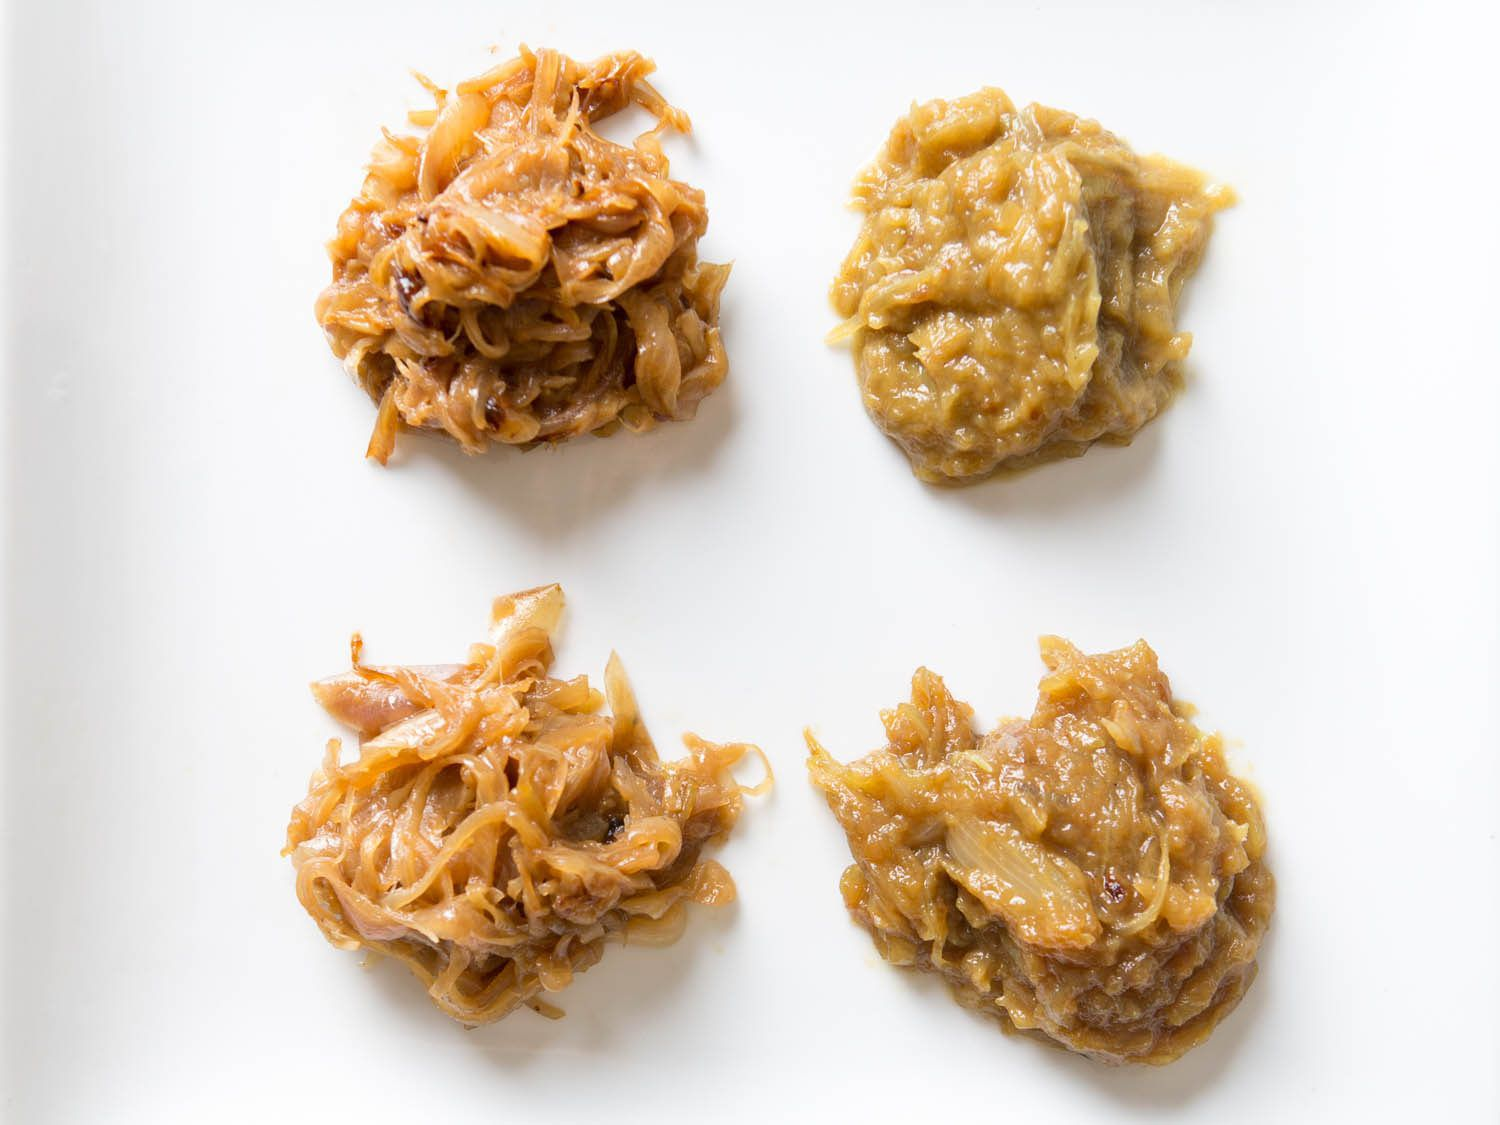 Caramelized onions, made with and without baking soda and various fats.